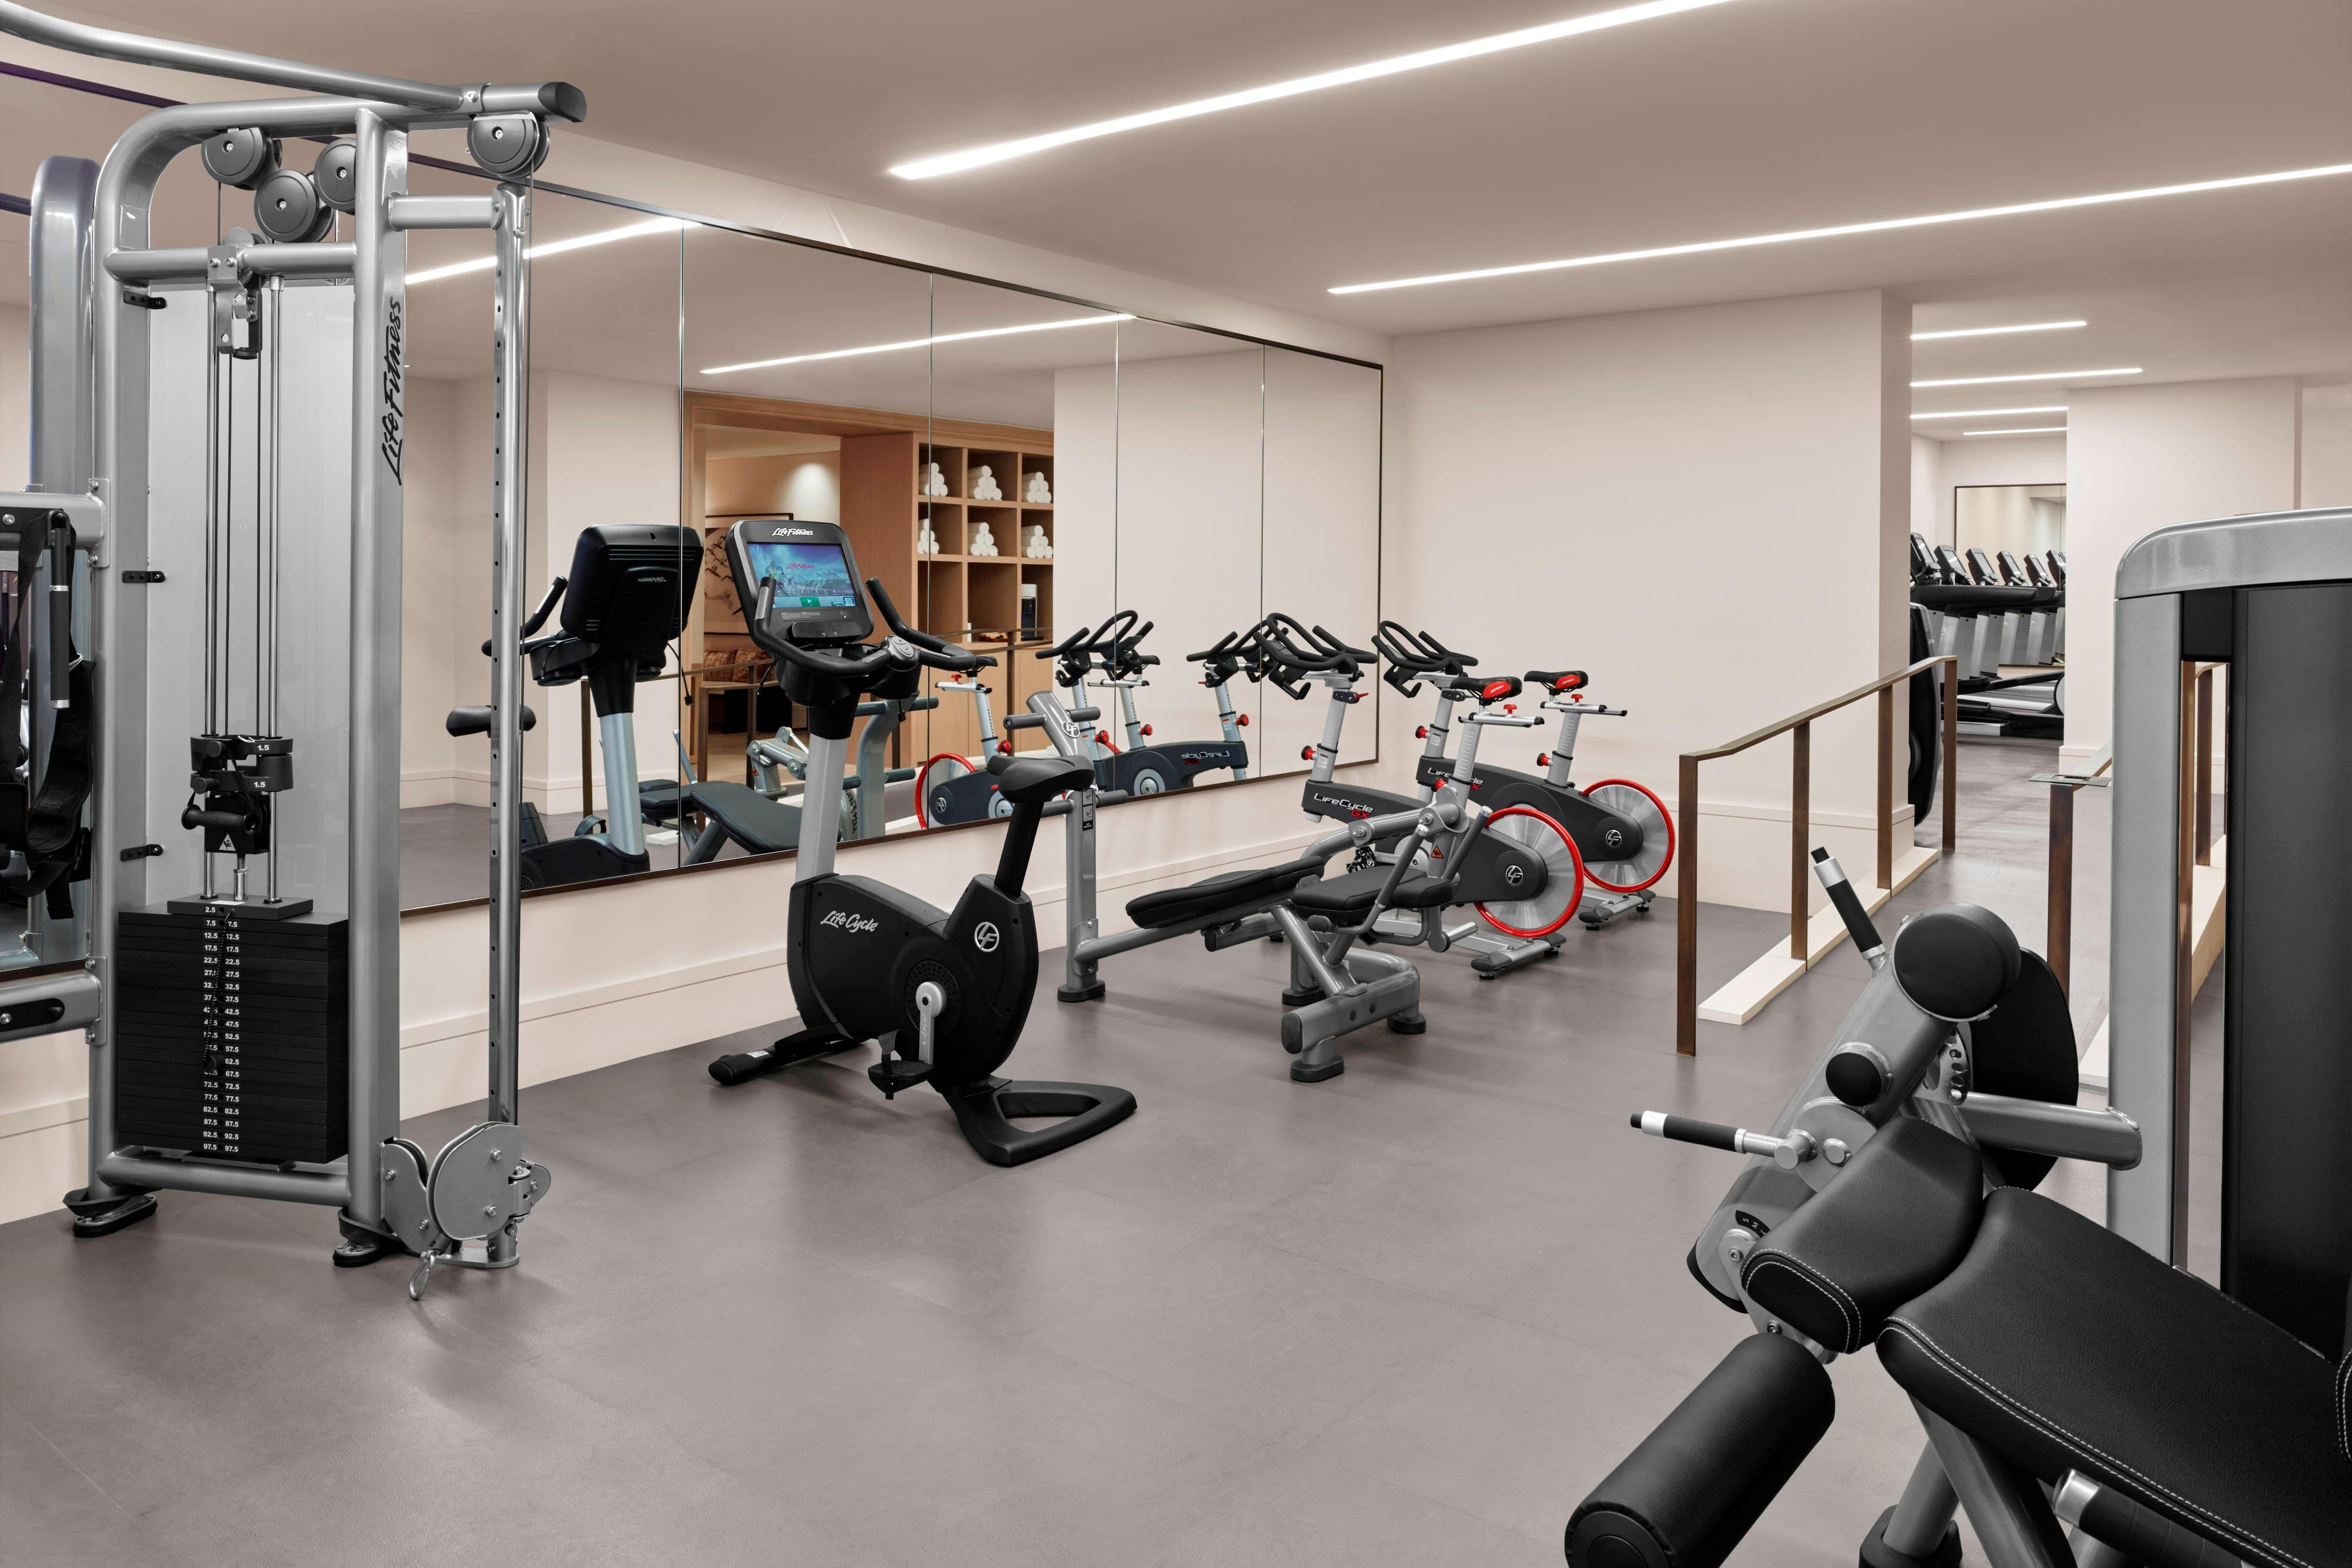 Gym and fitness center at the New York EDITION.